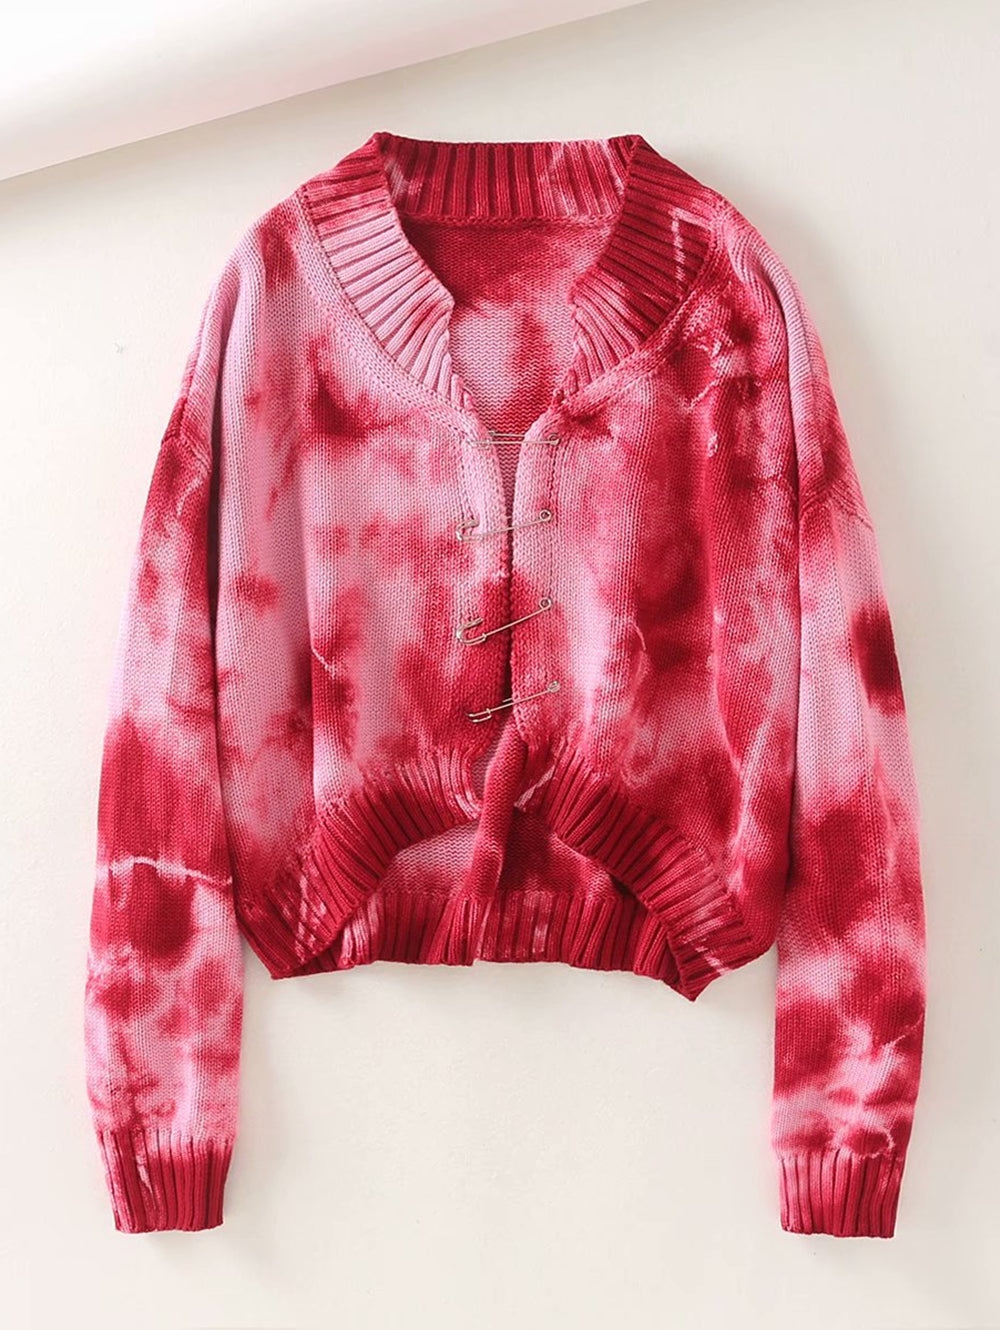 Tie-dye Pin Short-cropped Knitted Cardigan Sweaters